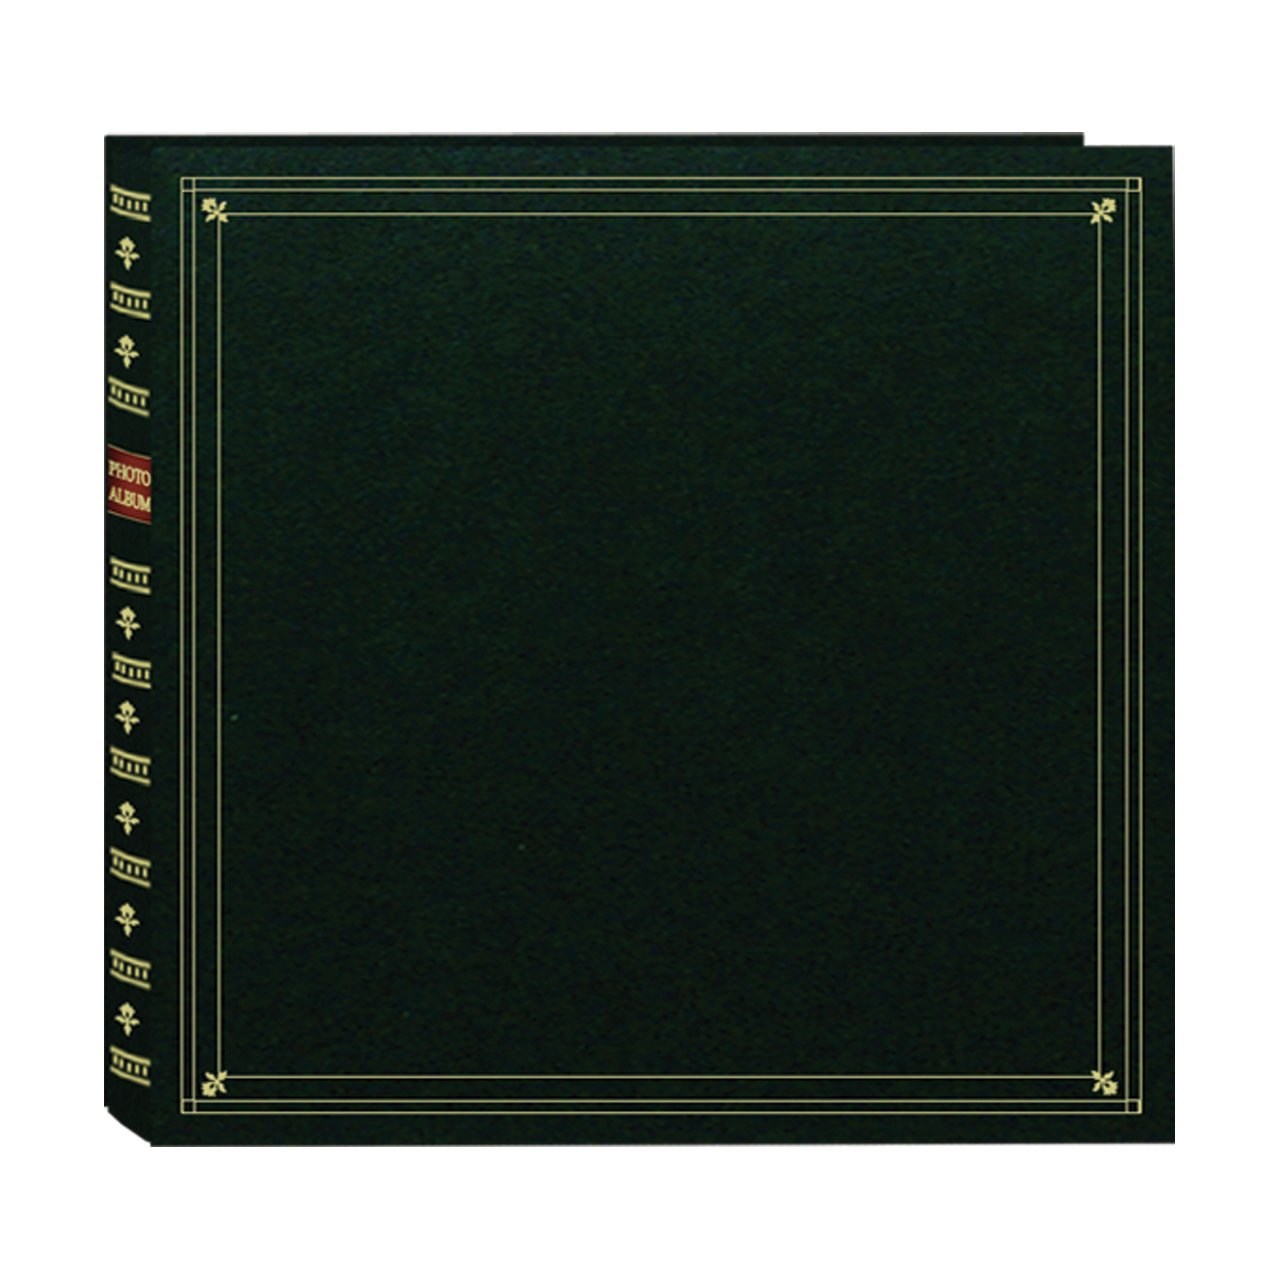 Pioneer Photo Albums 300-Pocket Memo Photo Album, 3.5 x 5 Inch, Hunter Green MP-300/HG